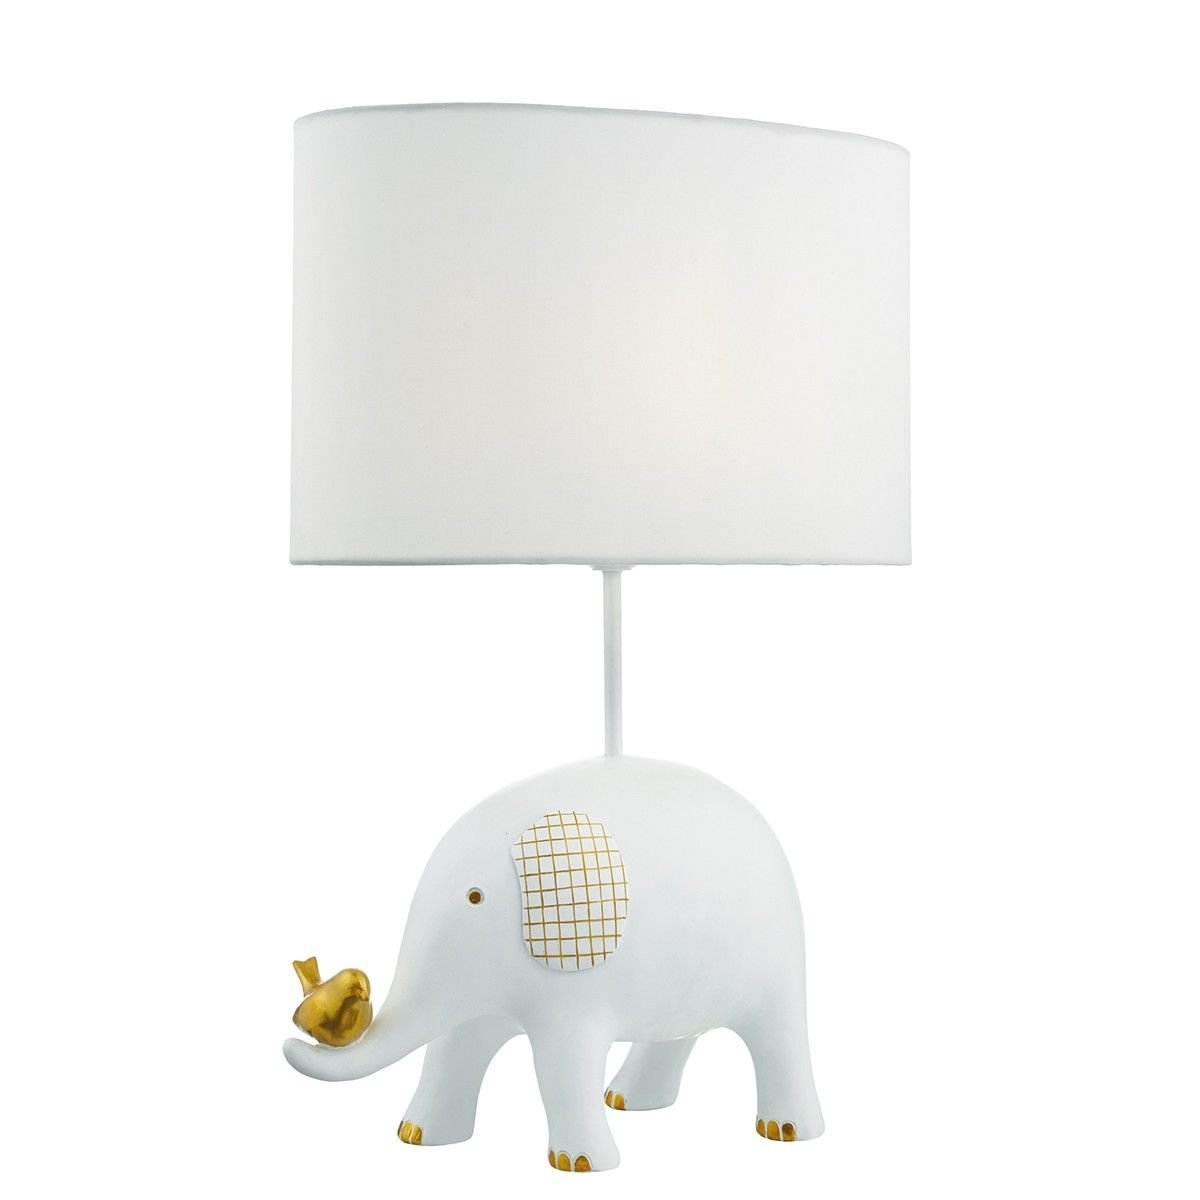 Jerakeen Table Lamp White C W Cotton Shade The Elephant Is An Adorable